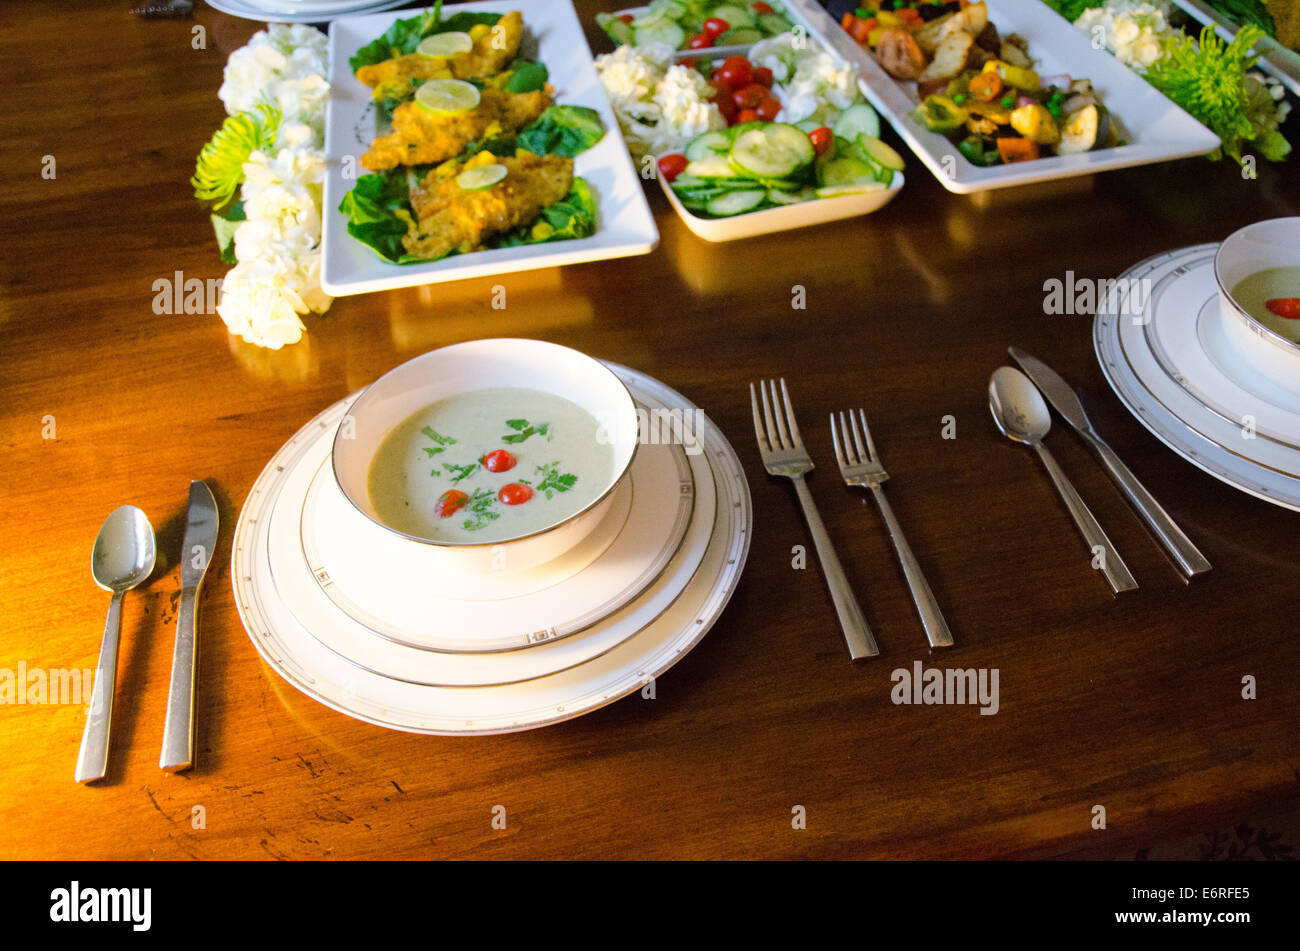 Buffet Style Dinner Party In An Elegant Setting With Soup Fish And Vegetables On A Wooden Dining Table Fancy White China